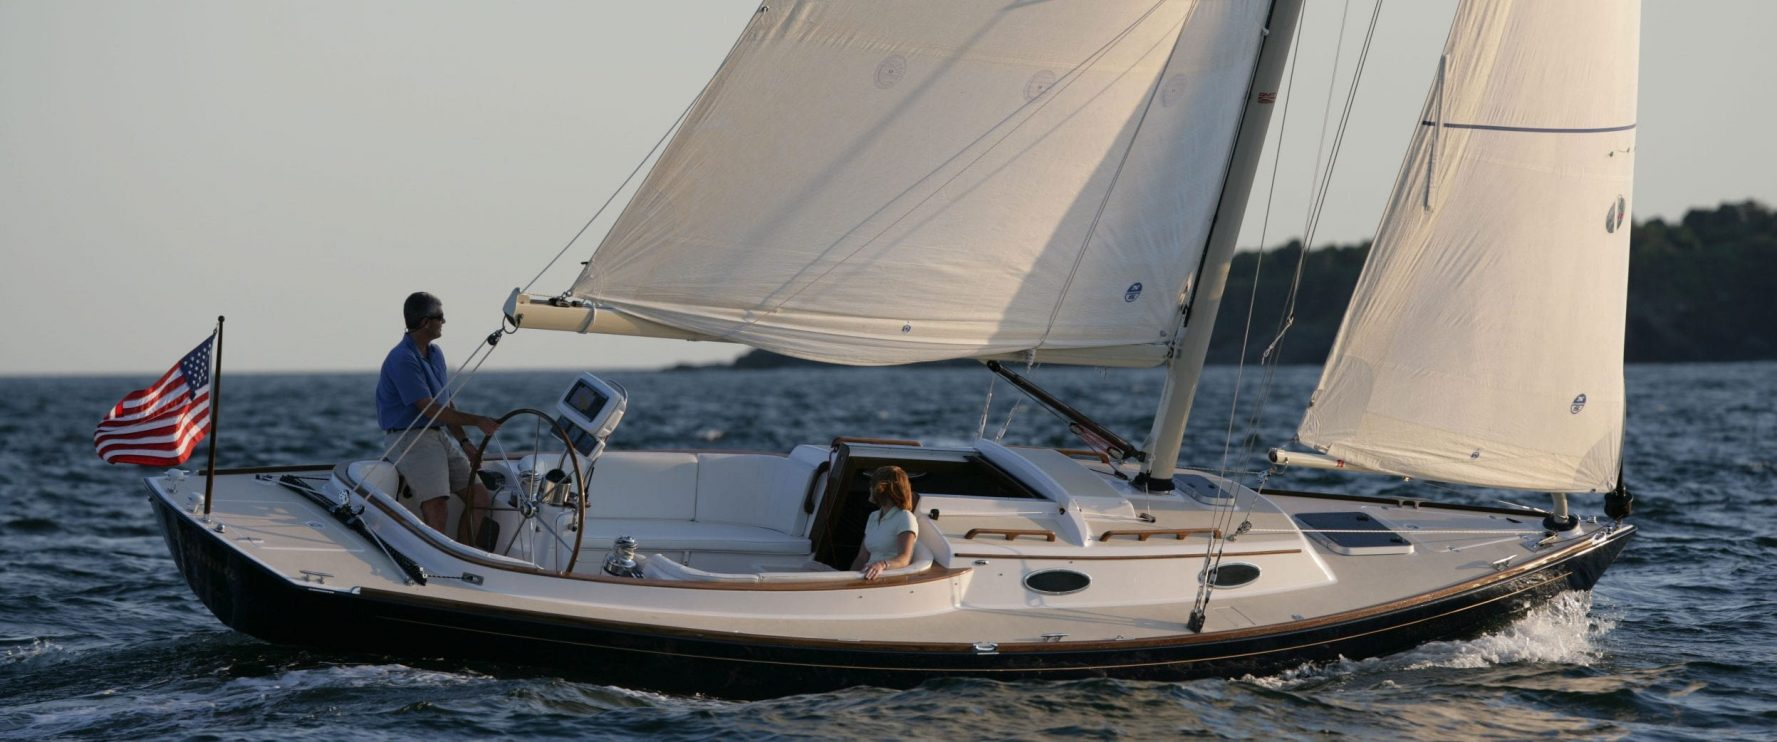 Sunnybrook Yachts - North American Yacht Brokerage